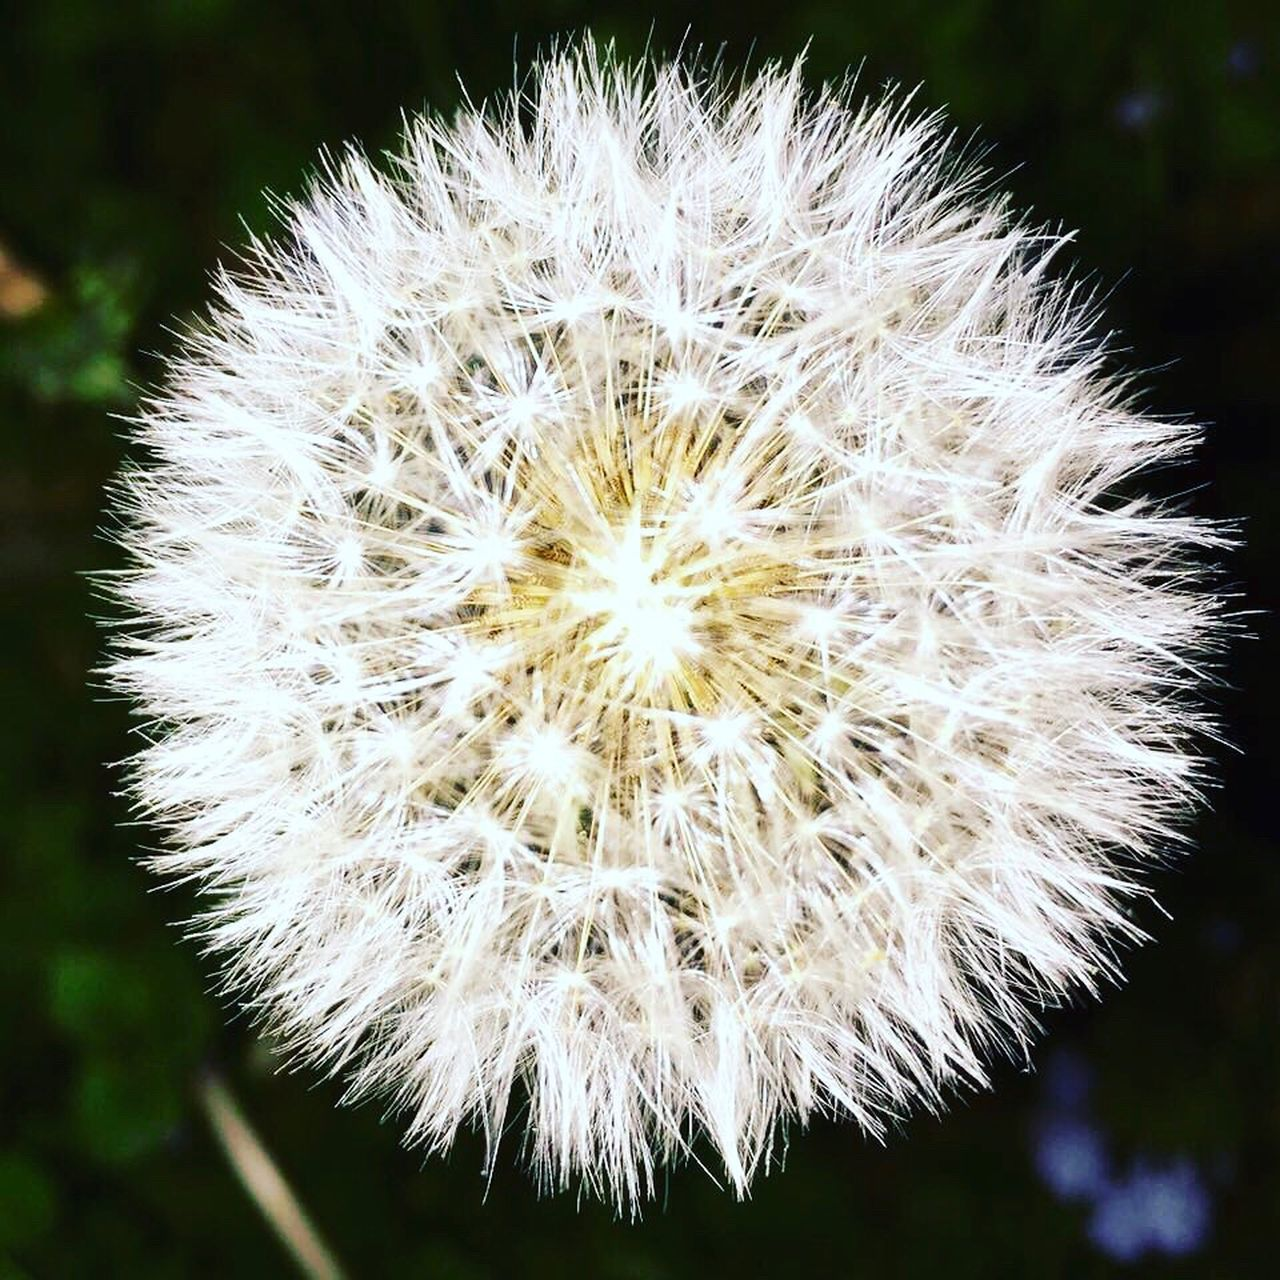 flower, dandelion, fragility, flower head, close-up, focus on foreground, nature, uncultivated, no people, outdoors, day, plant, growth, beauty in nature, freshness